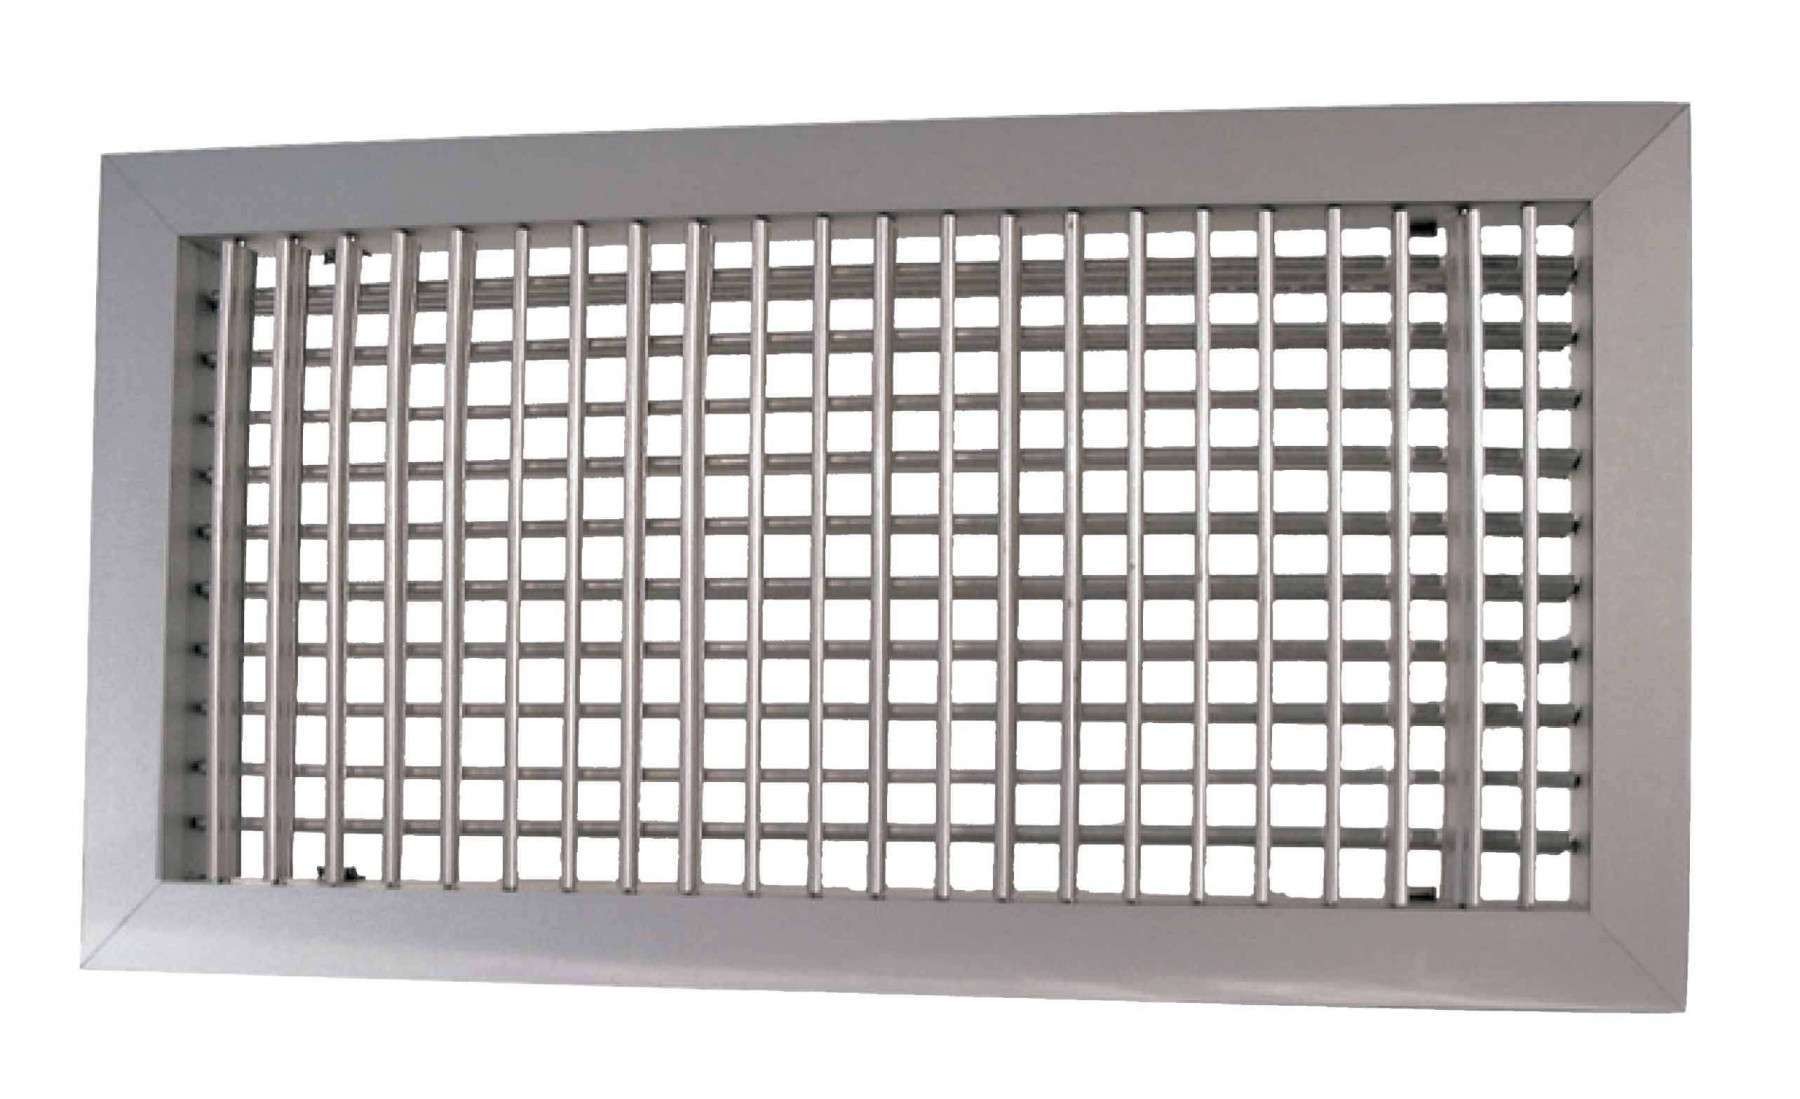 GAO D A 500/200 UNELVENT GRILLES SOUFFLAGE/REPRISE DOUBLE DEFLECTION 858443